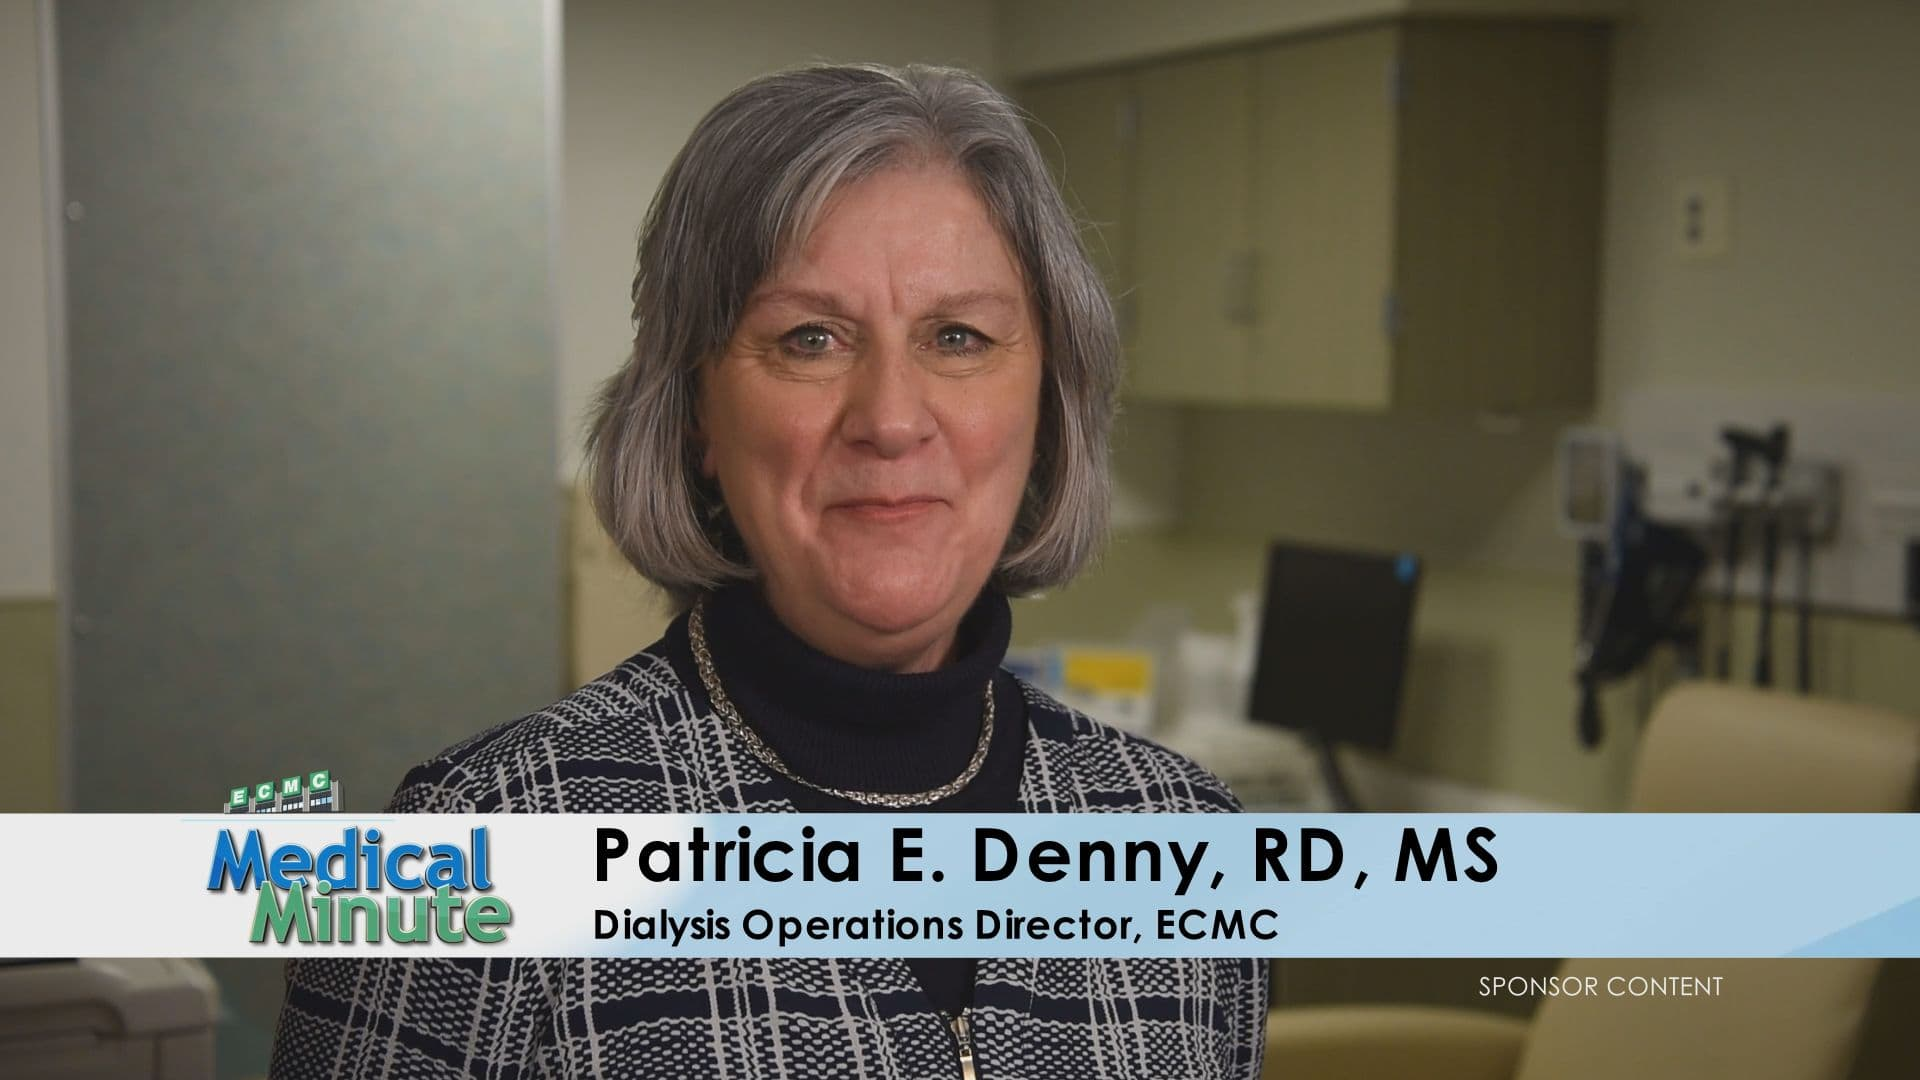 ECMCMedicalMinute PatriciaDenny,RD,MS KidneyDiseasePatientEducationSessions 123118 STILL